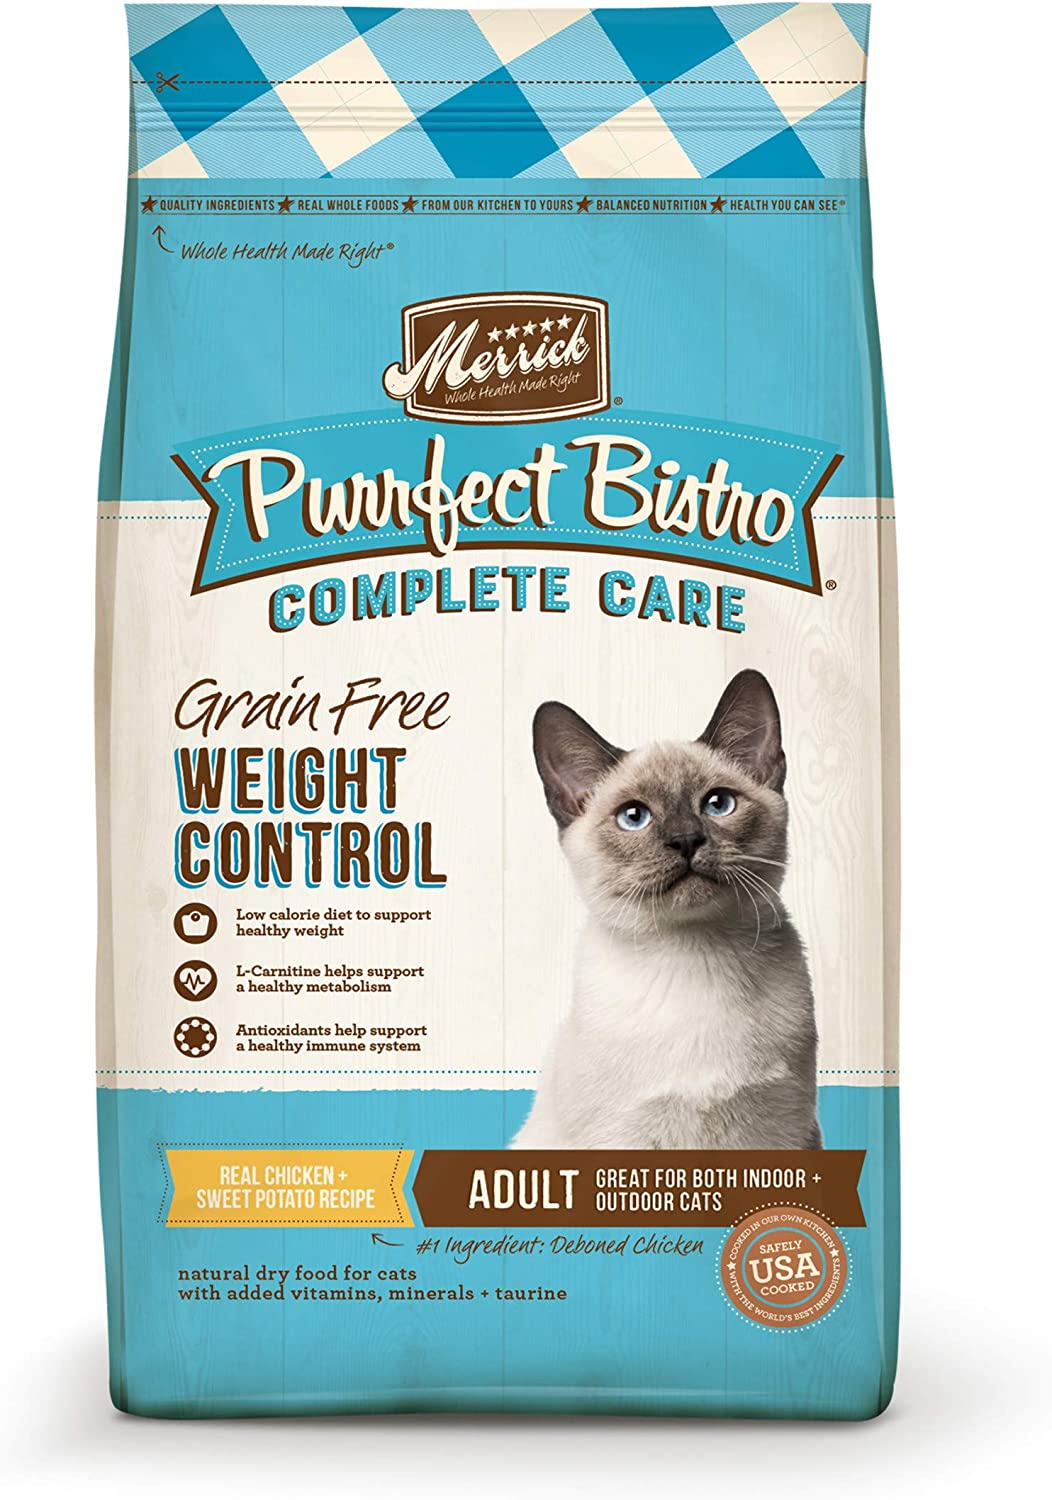 Merrick Purrfect Bistro Grain Free Cat Complete Food Mail order cheap Max 44% OFF Dry Care